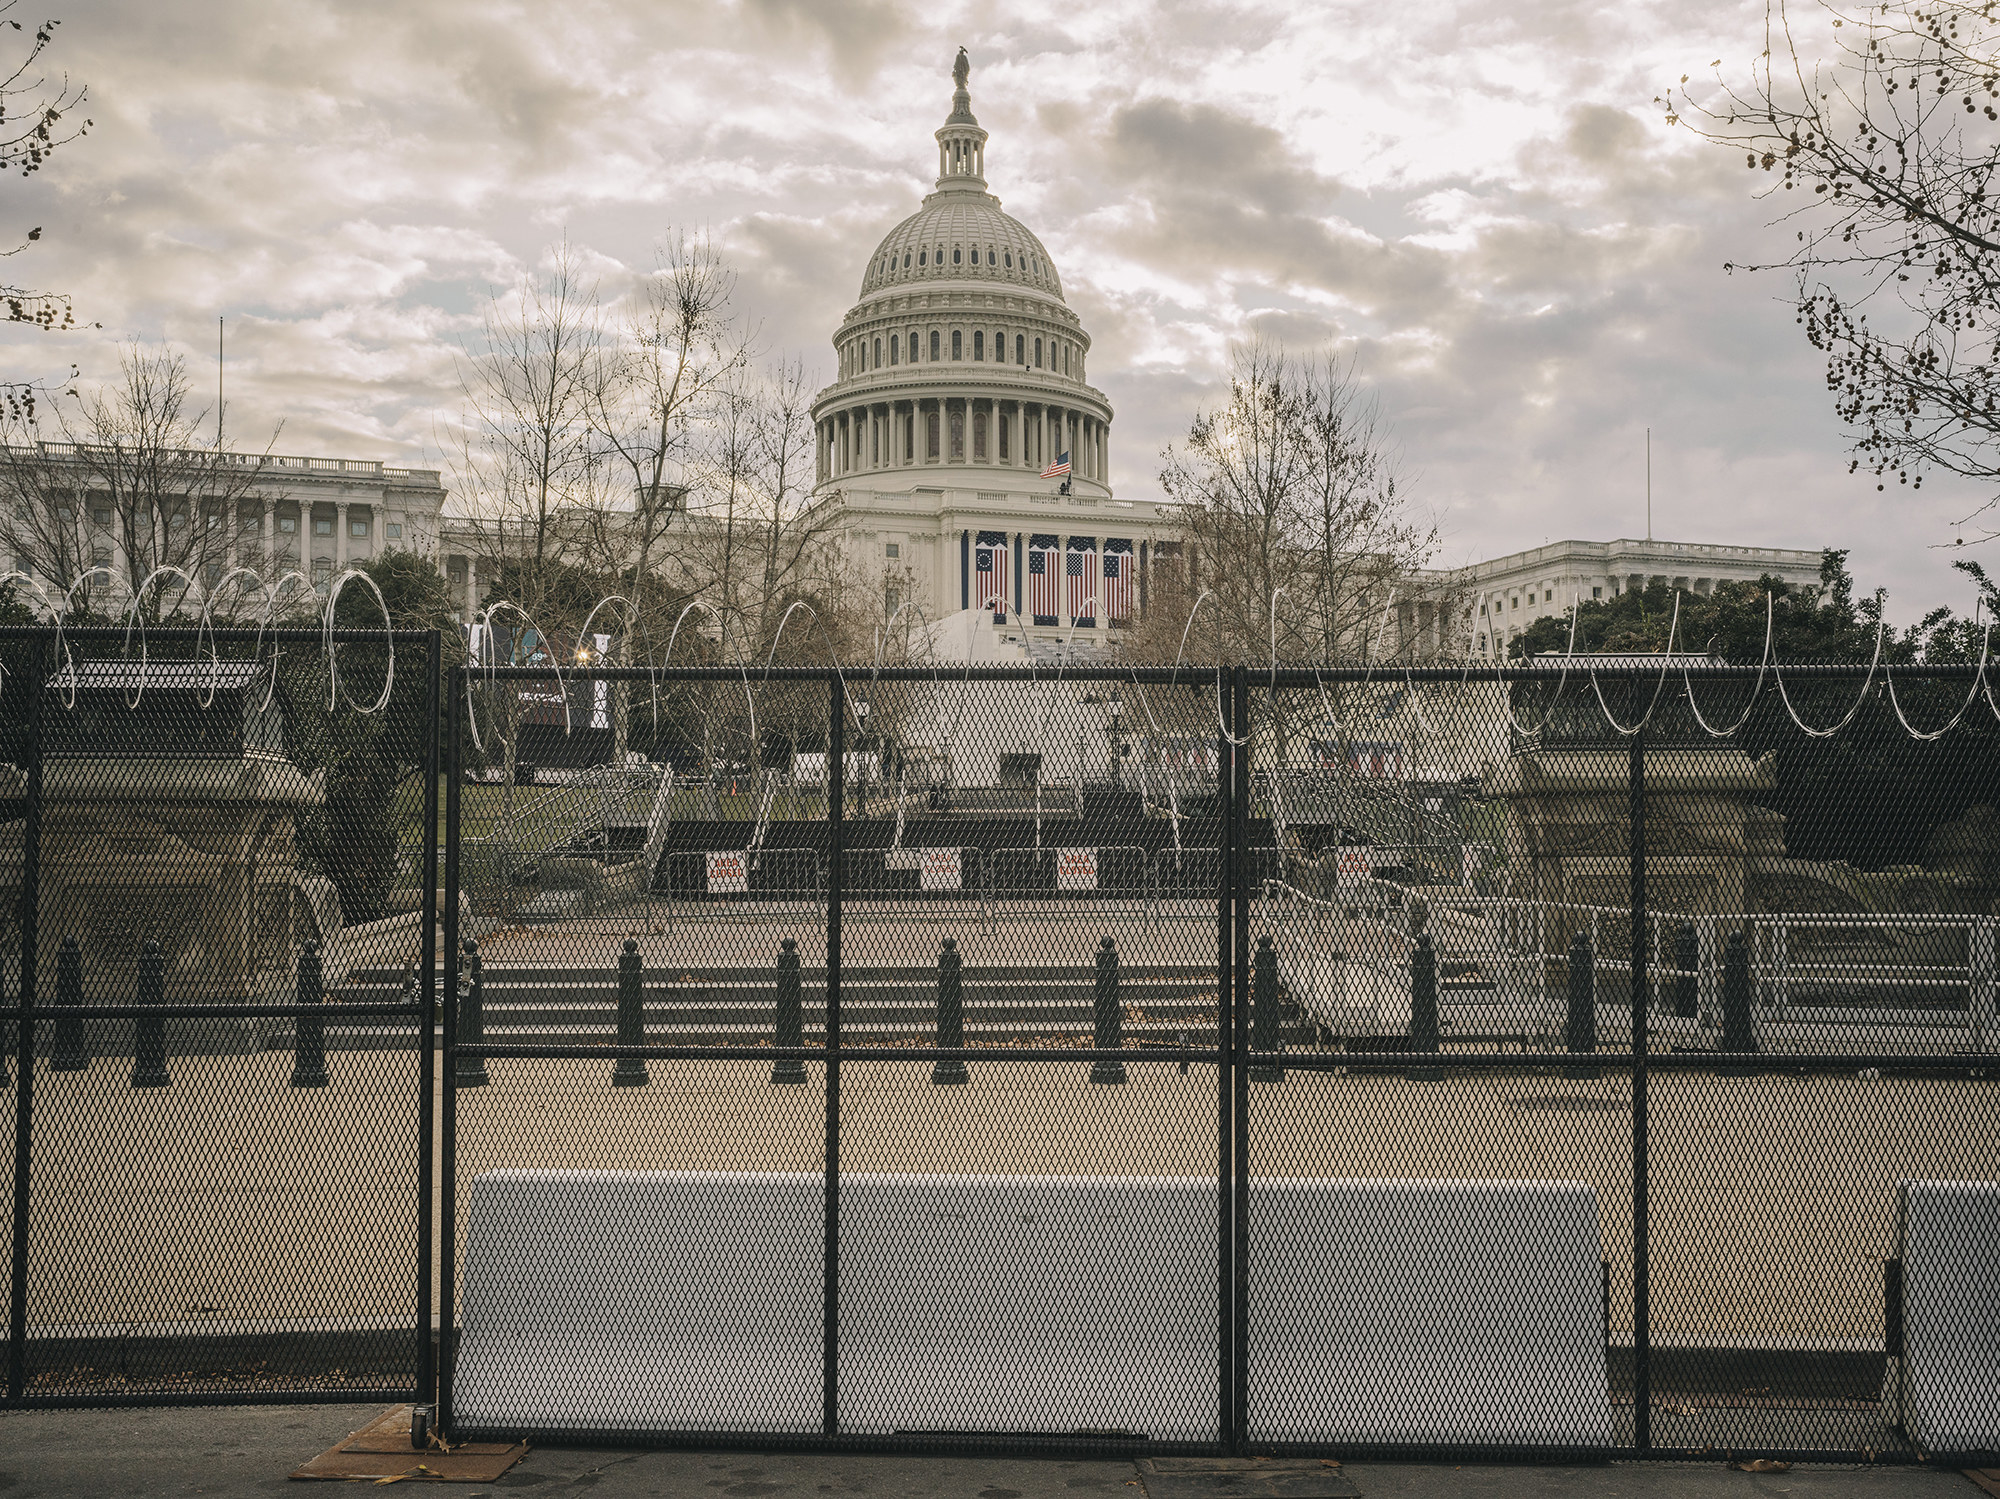 A view of the Capitol building through barricades